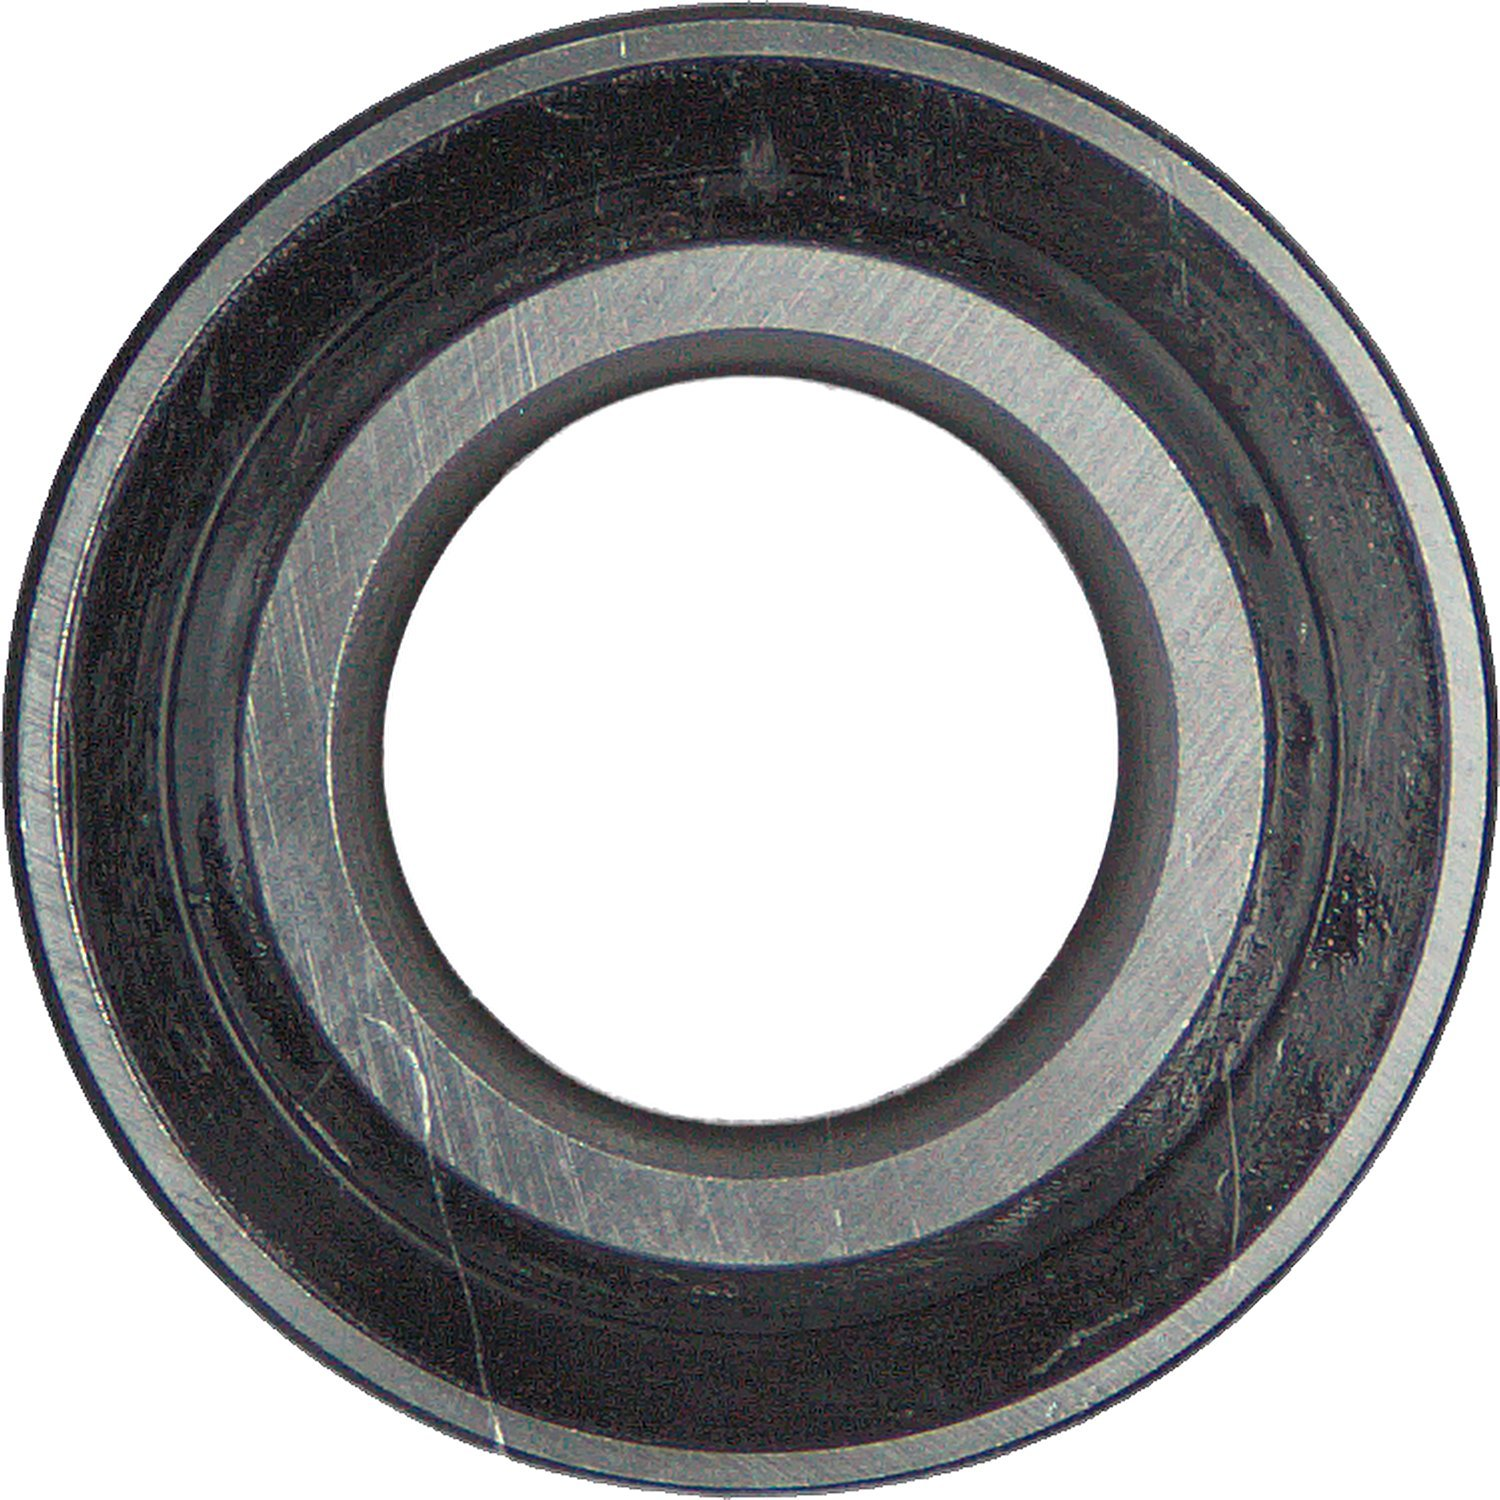 pack of one febi bilstein 05538 Wheel Bearing Kit with axle nut and circlip